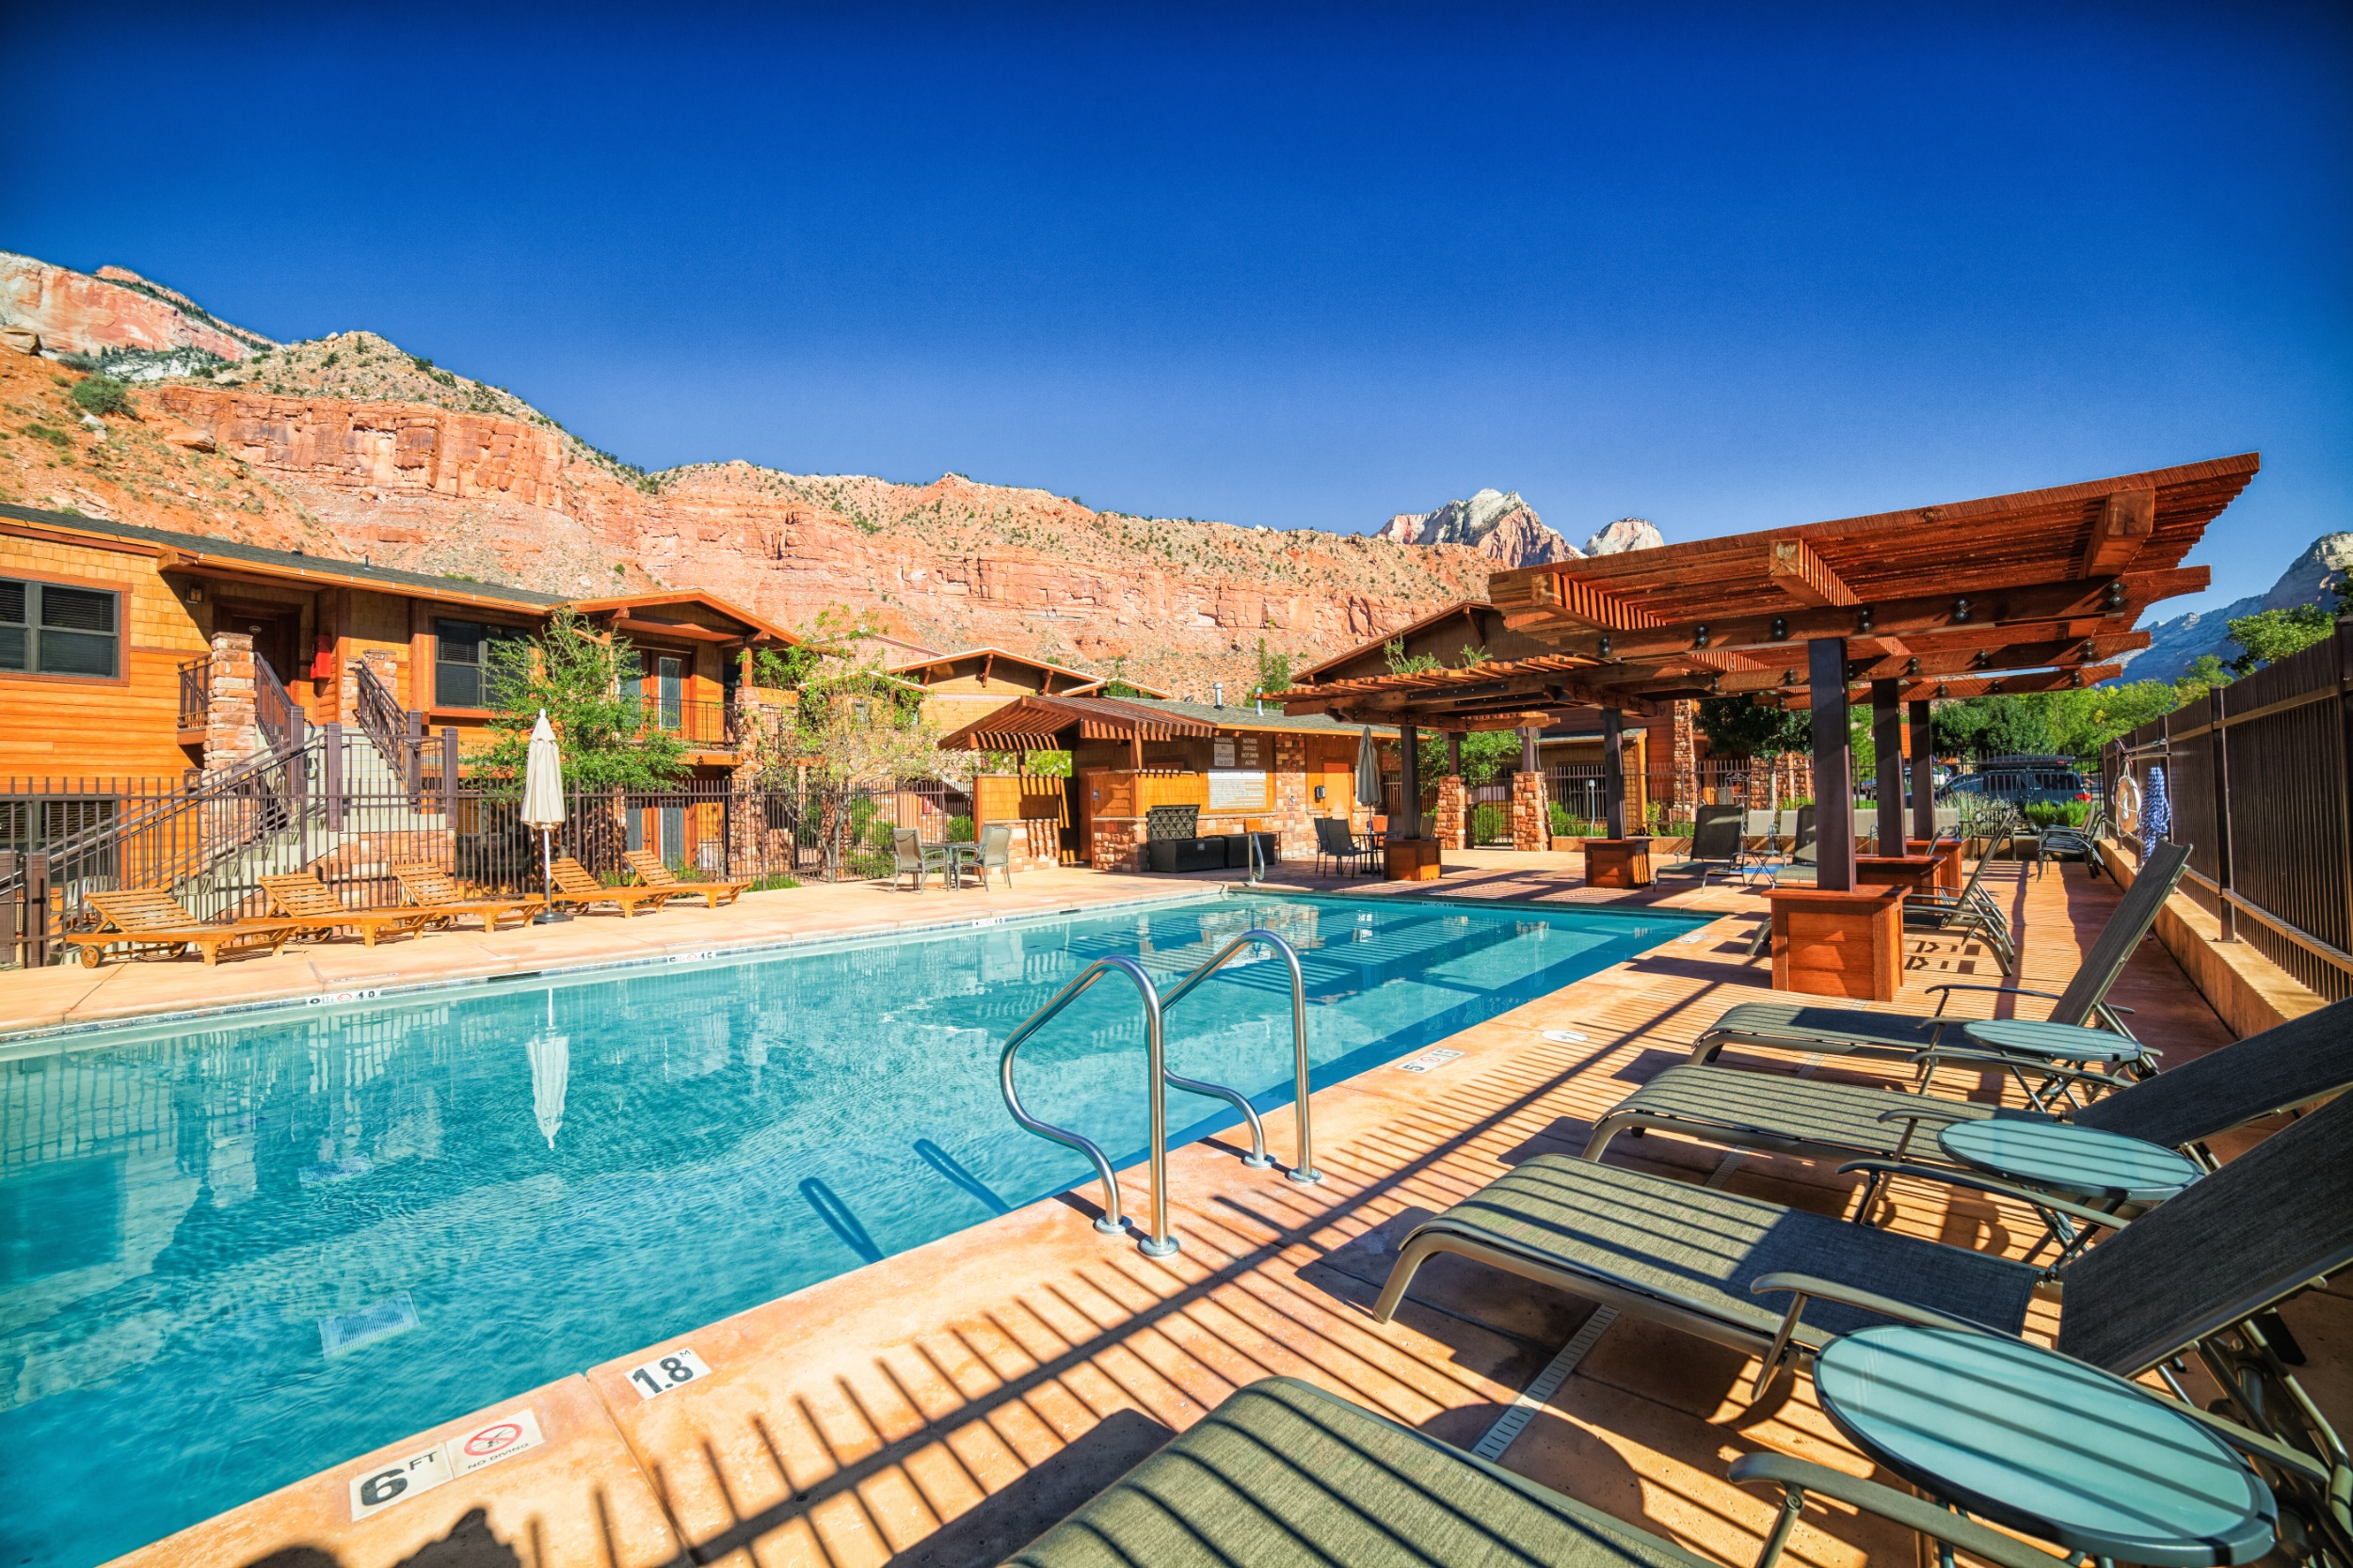 Pool spa cable mountain lodge at zion national park for Alpine lodge